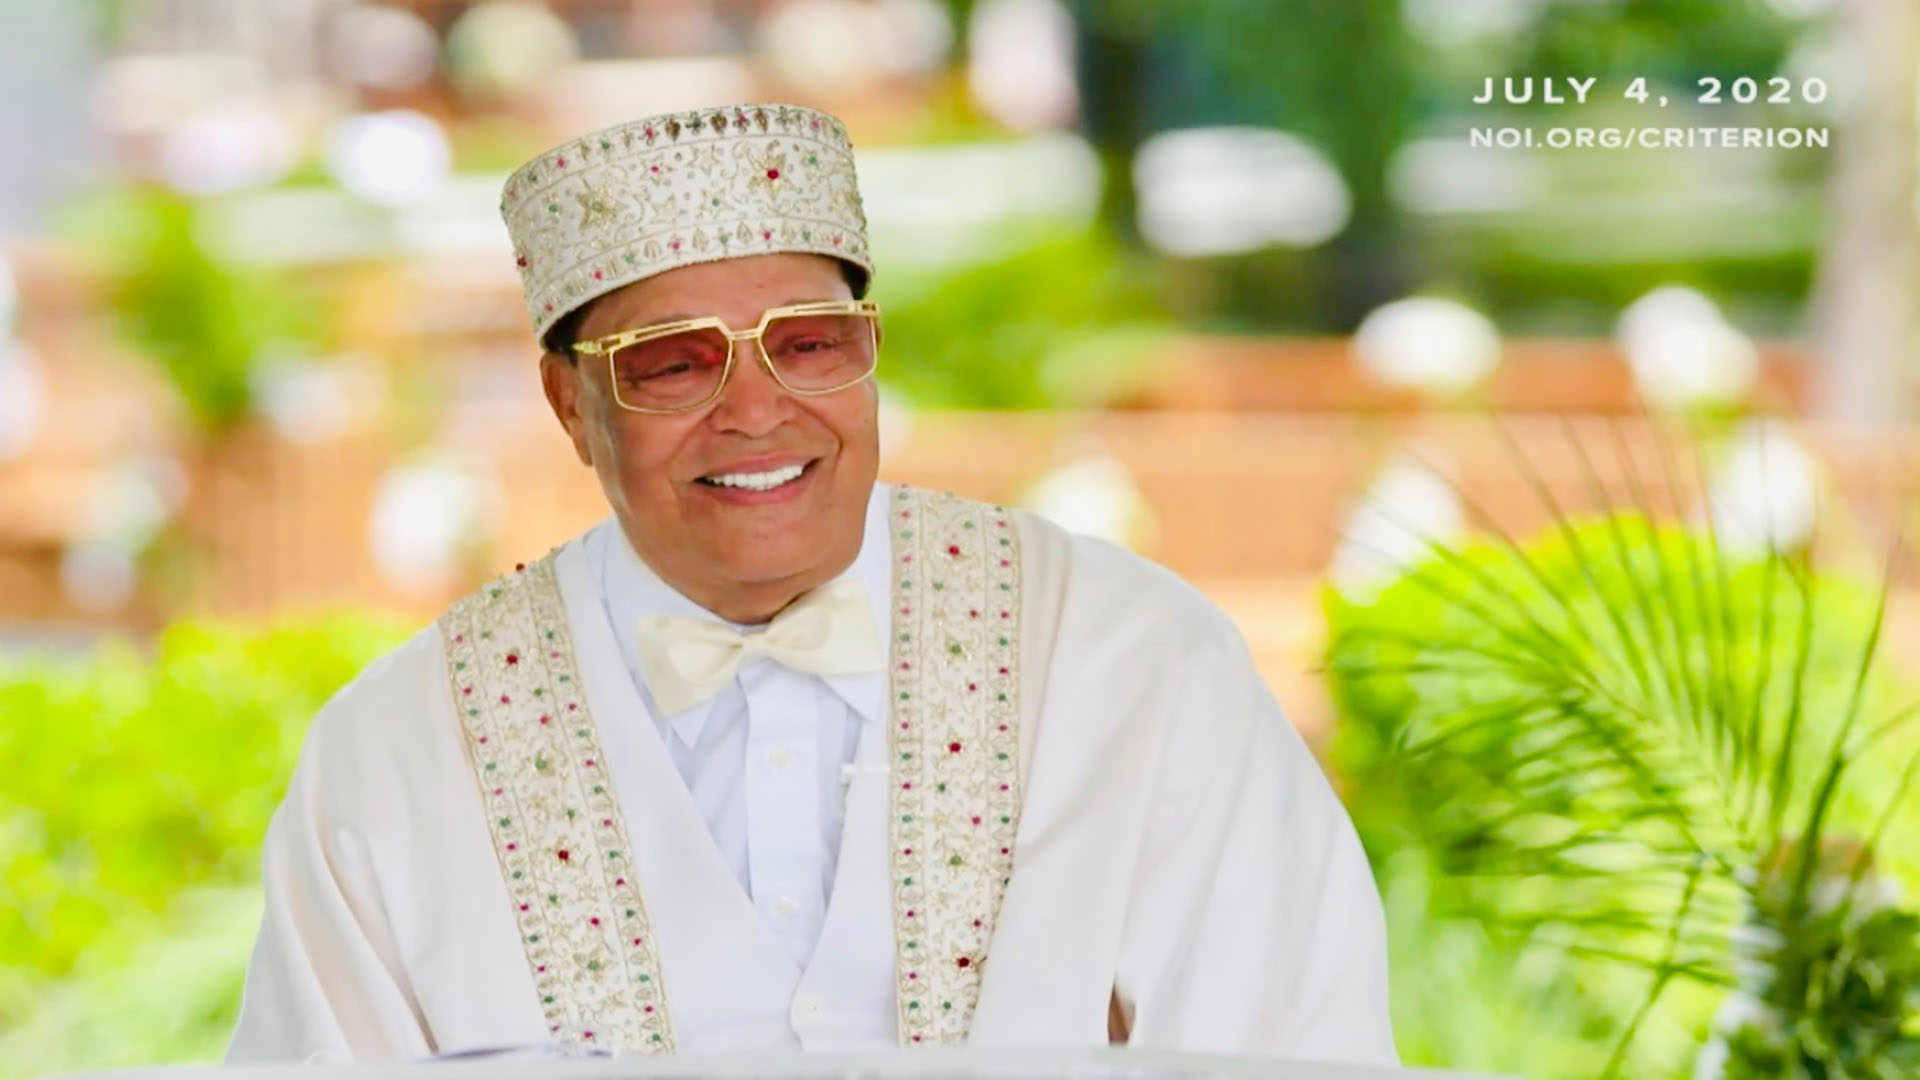 Minister Farrakhan: The Criterion with Special Footage